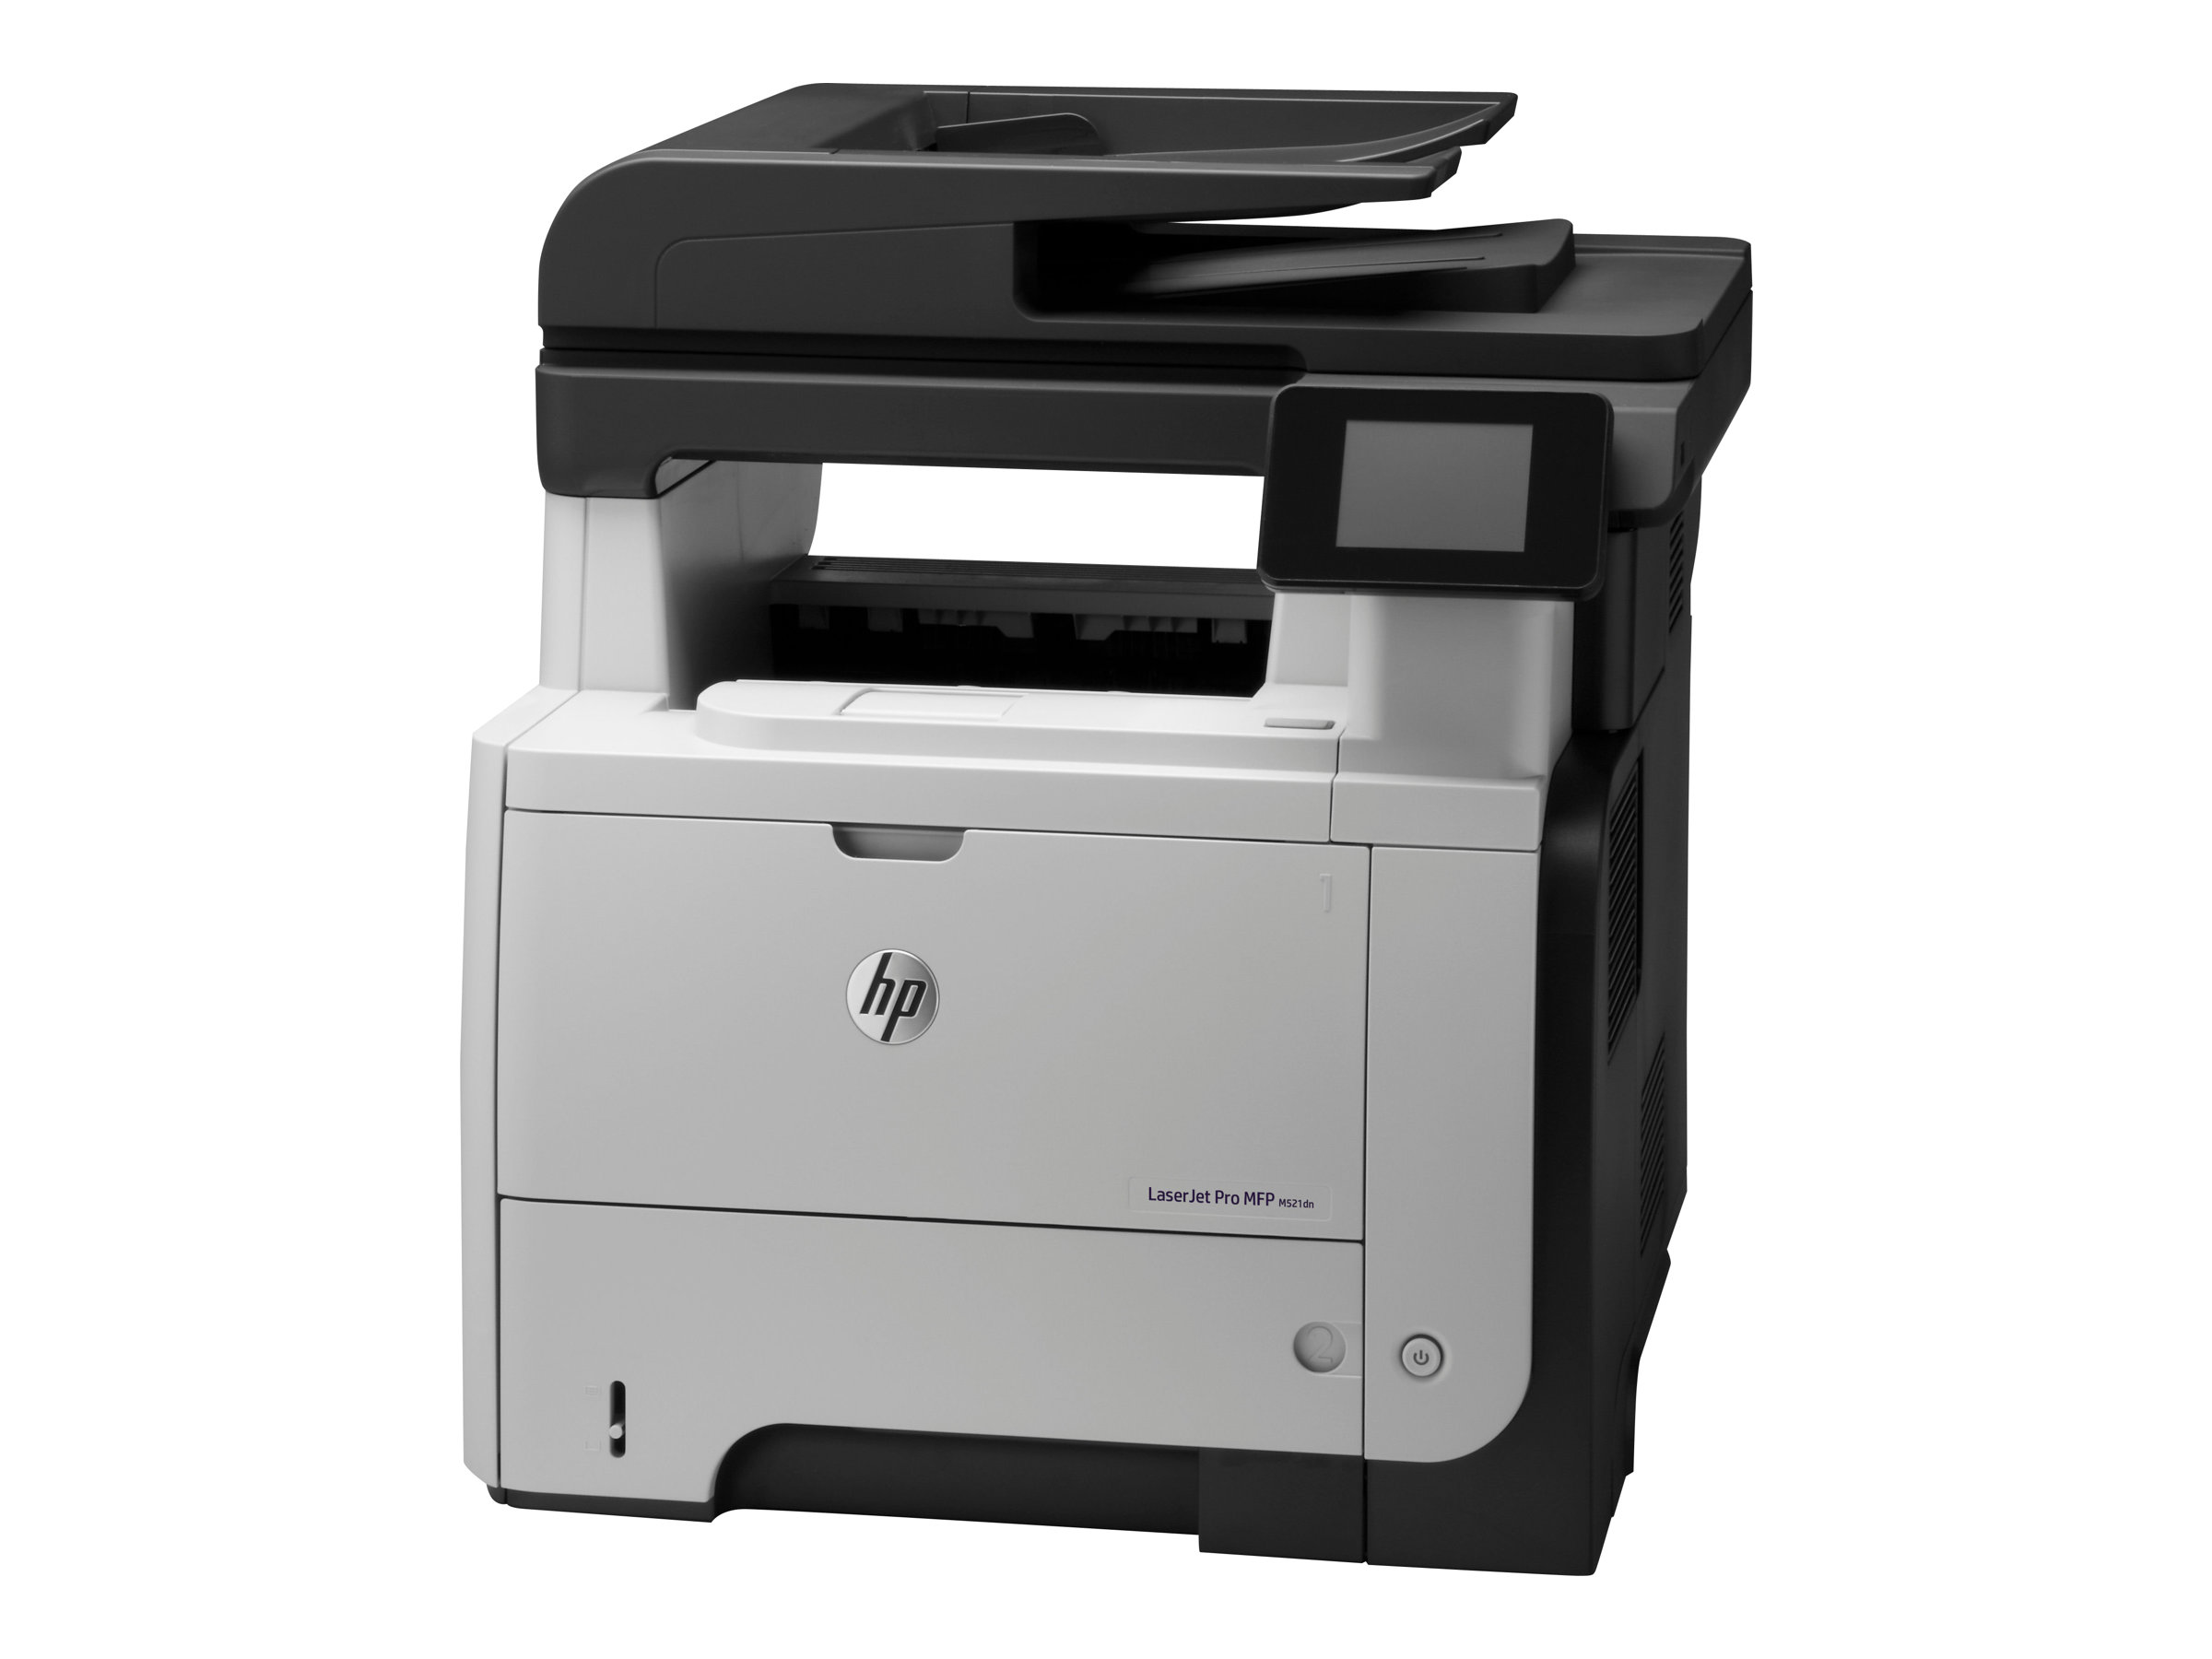 HP LaserJet Pro MFP M521dn - Multifunktionsdrucker - s/w - Laser - Legal (216 x 356 mm) (Original) - A4/Legal (Medien)